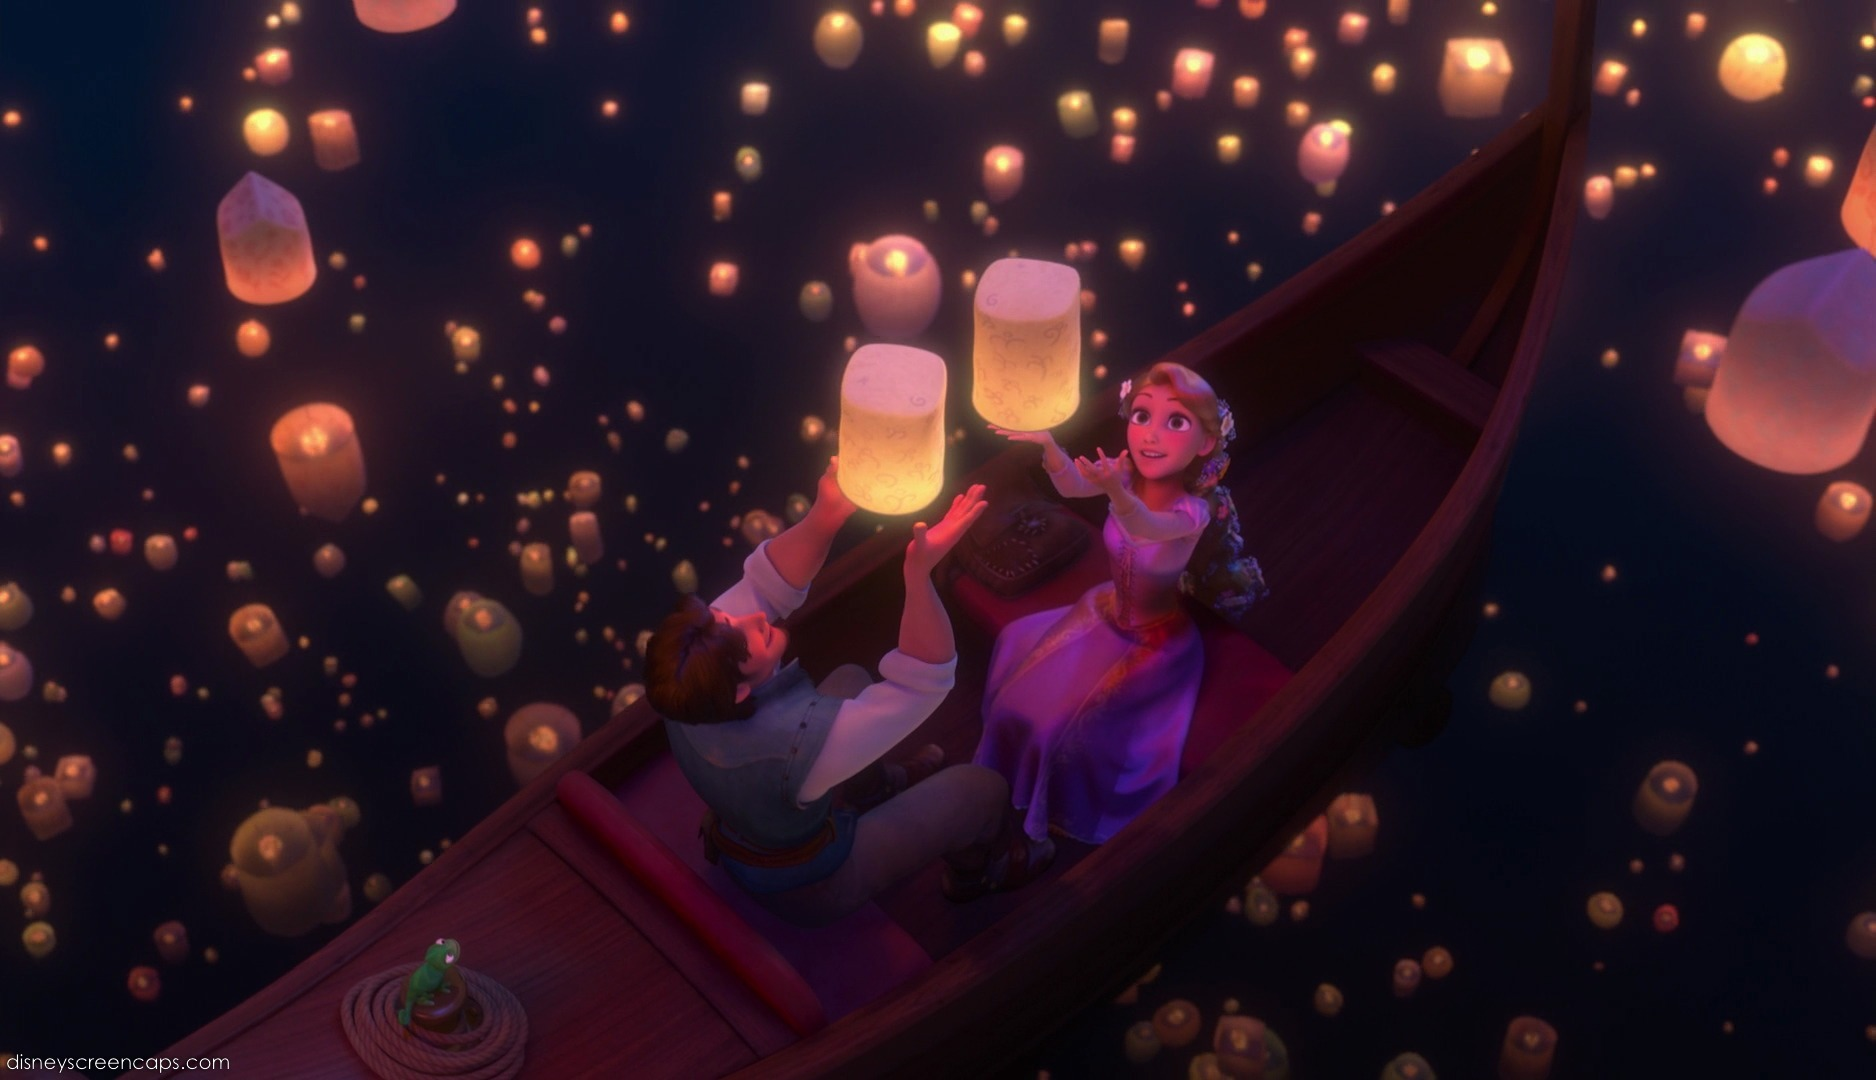 Tangled Wallpaper Lantern 1876x1080